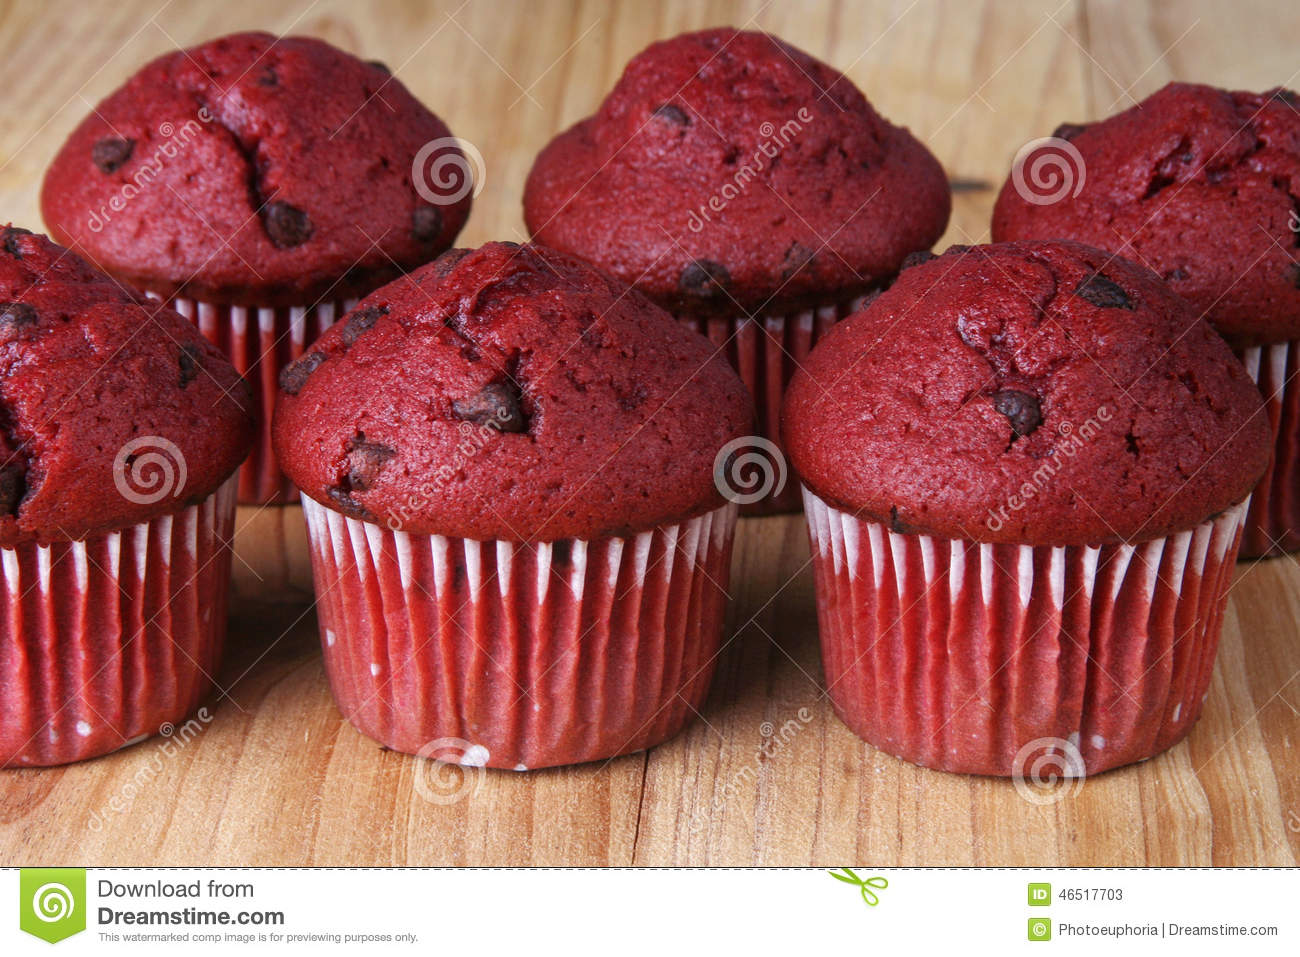 Shot of several red velvet muffins on a wooden board.